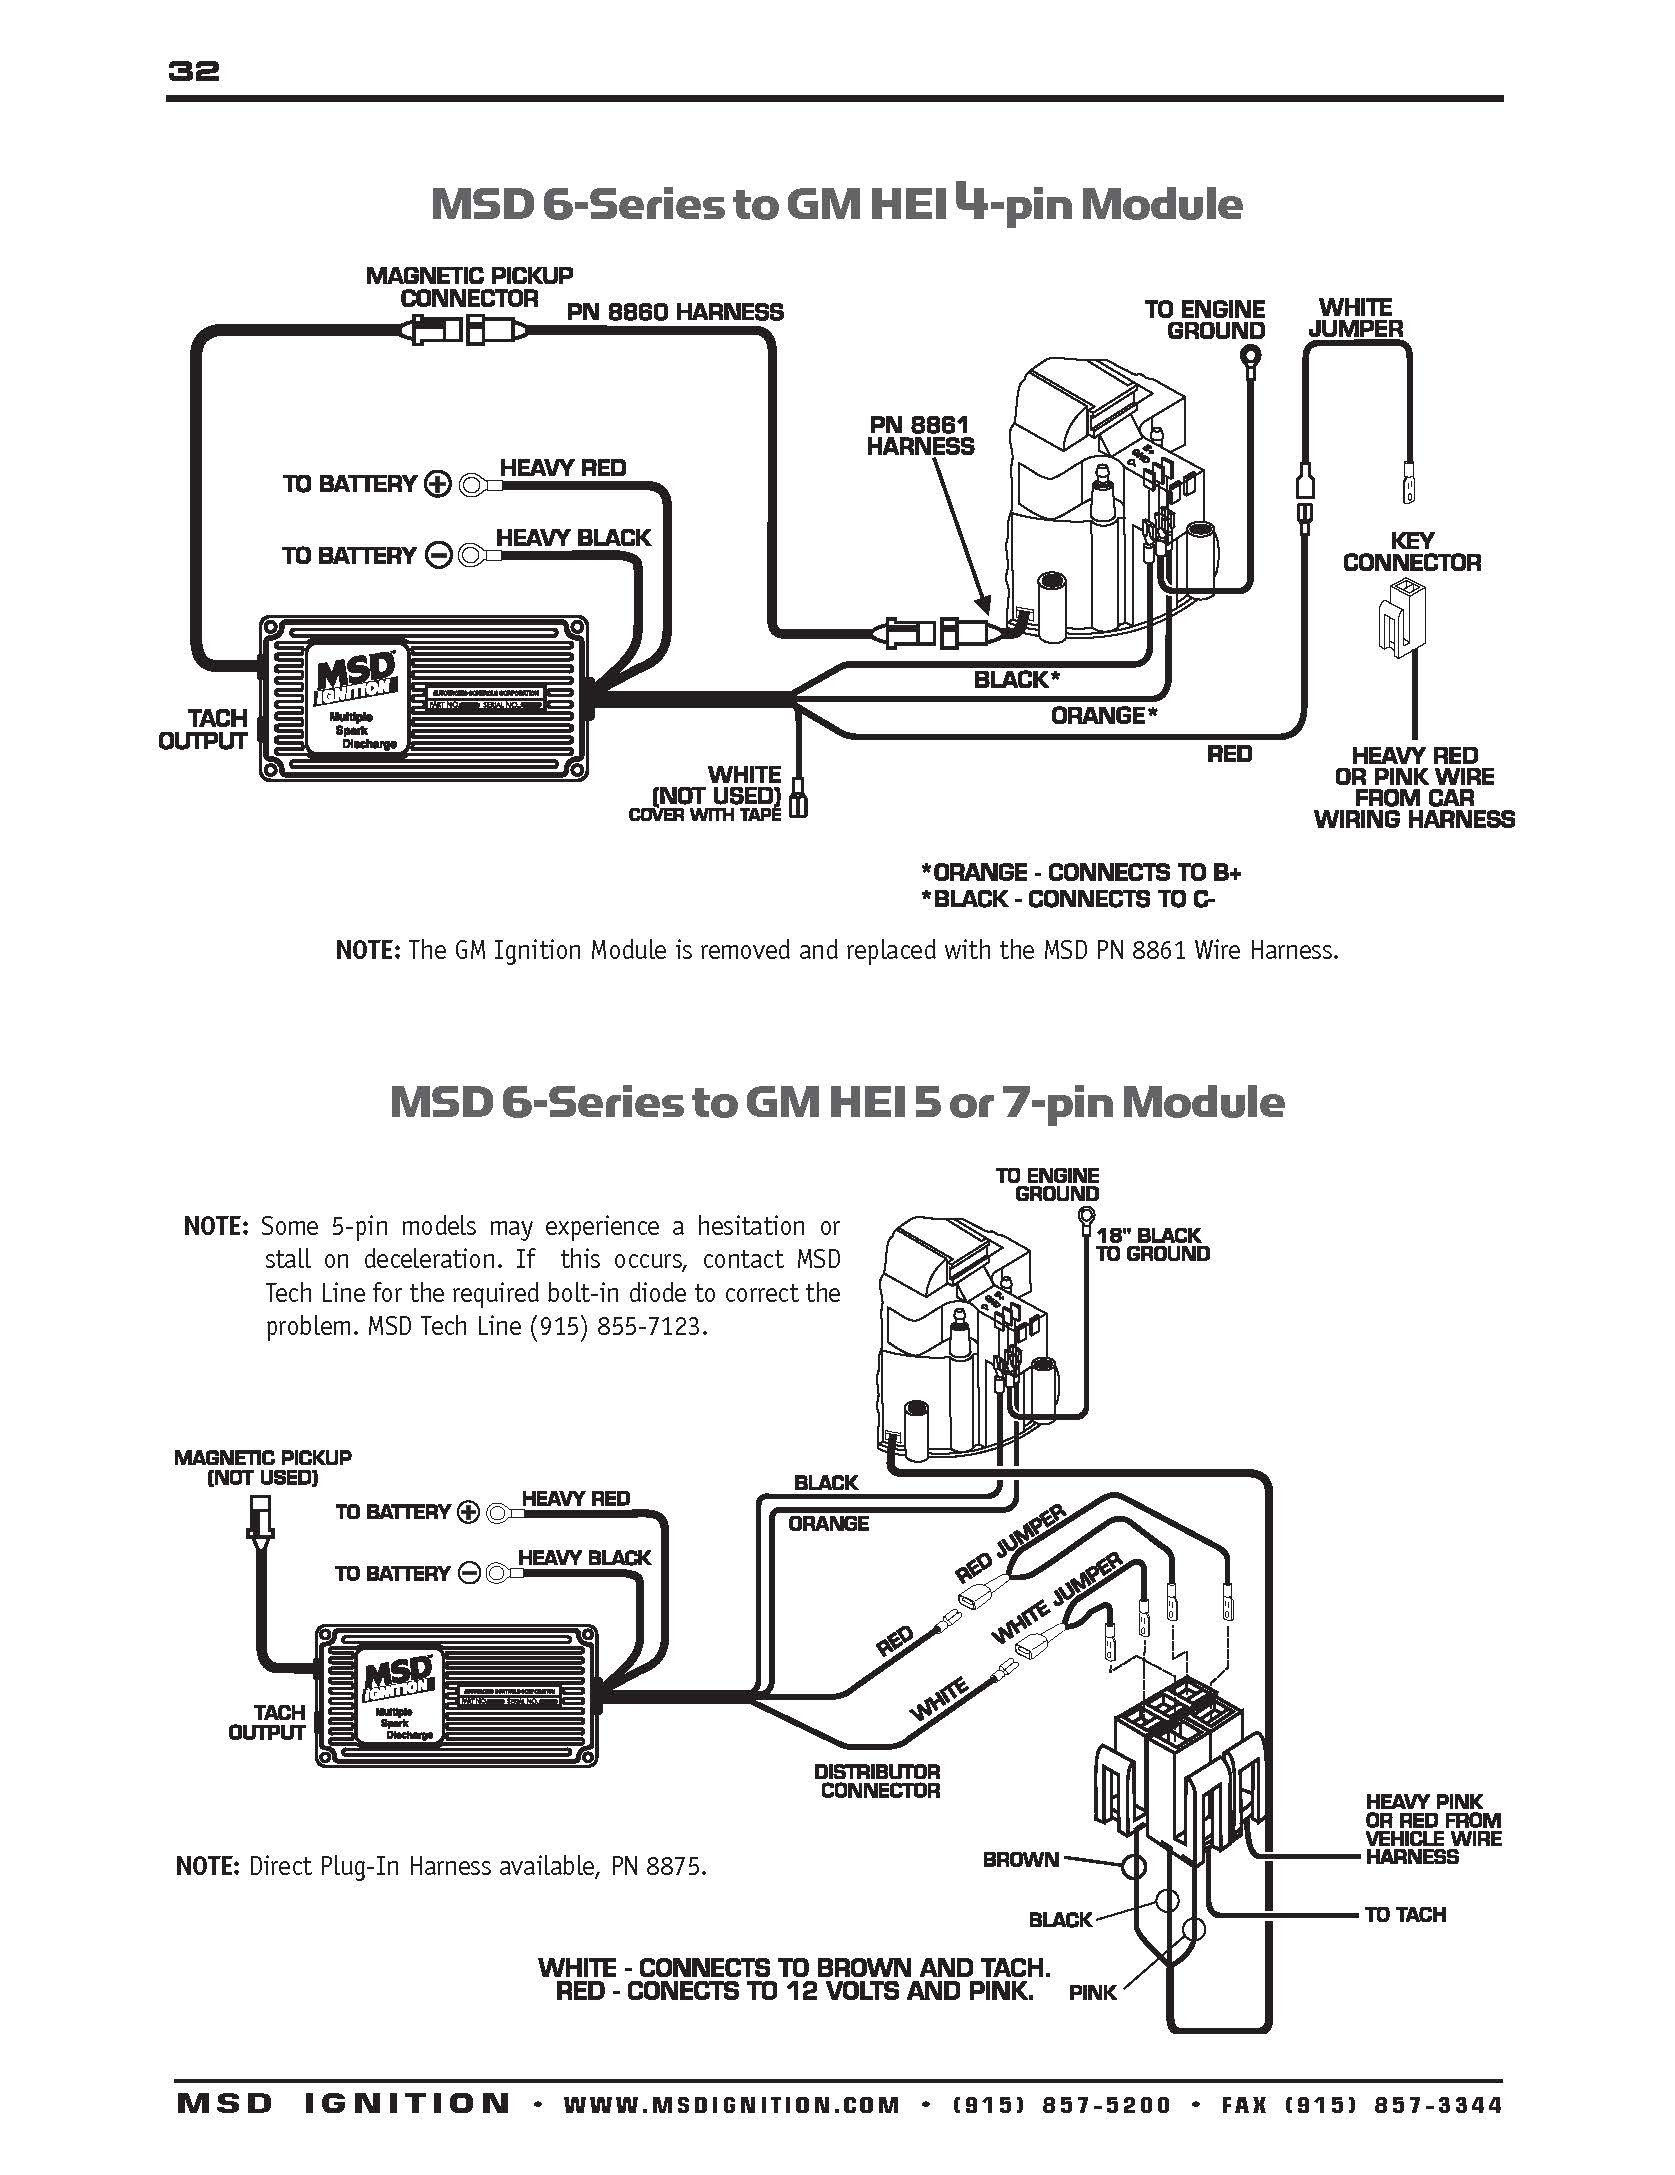 WRG-9423] Mallory 685 Ignition Wiring Diagram on